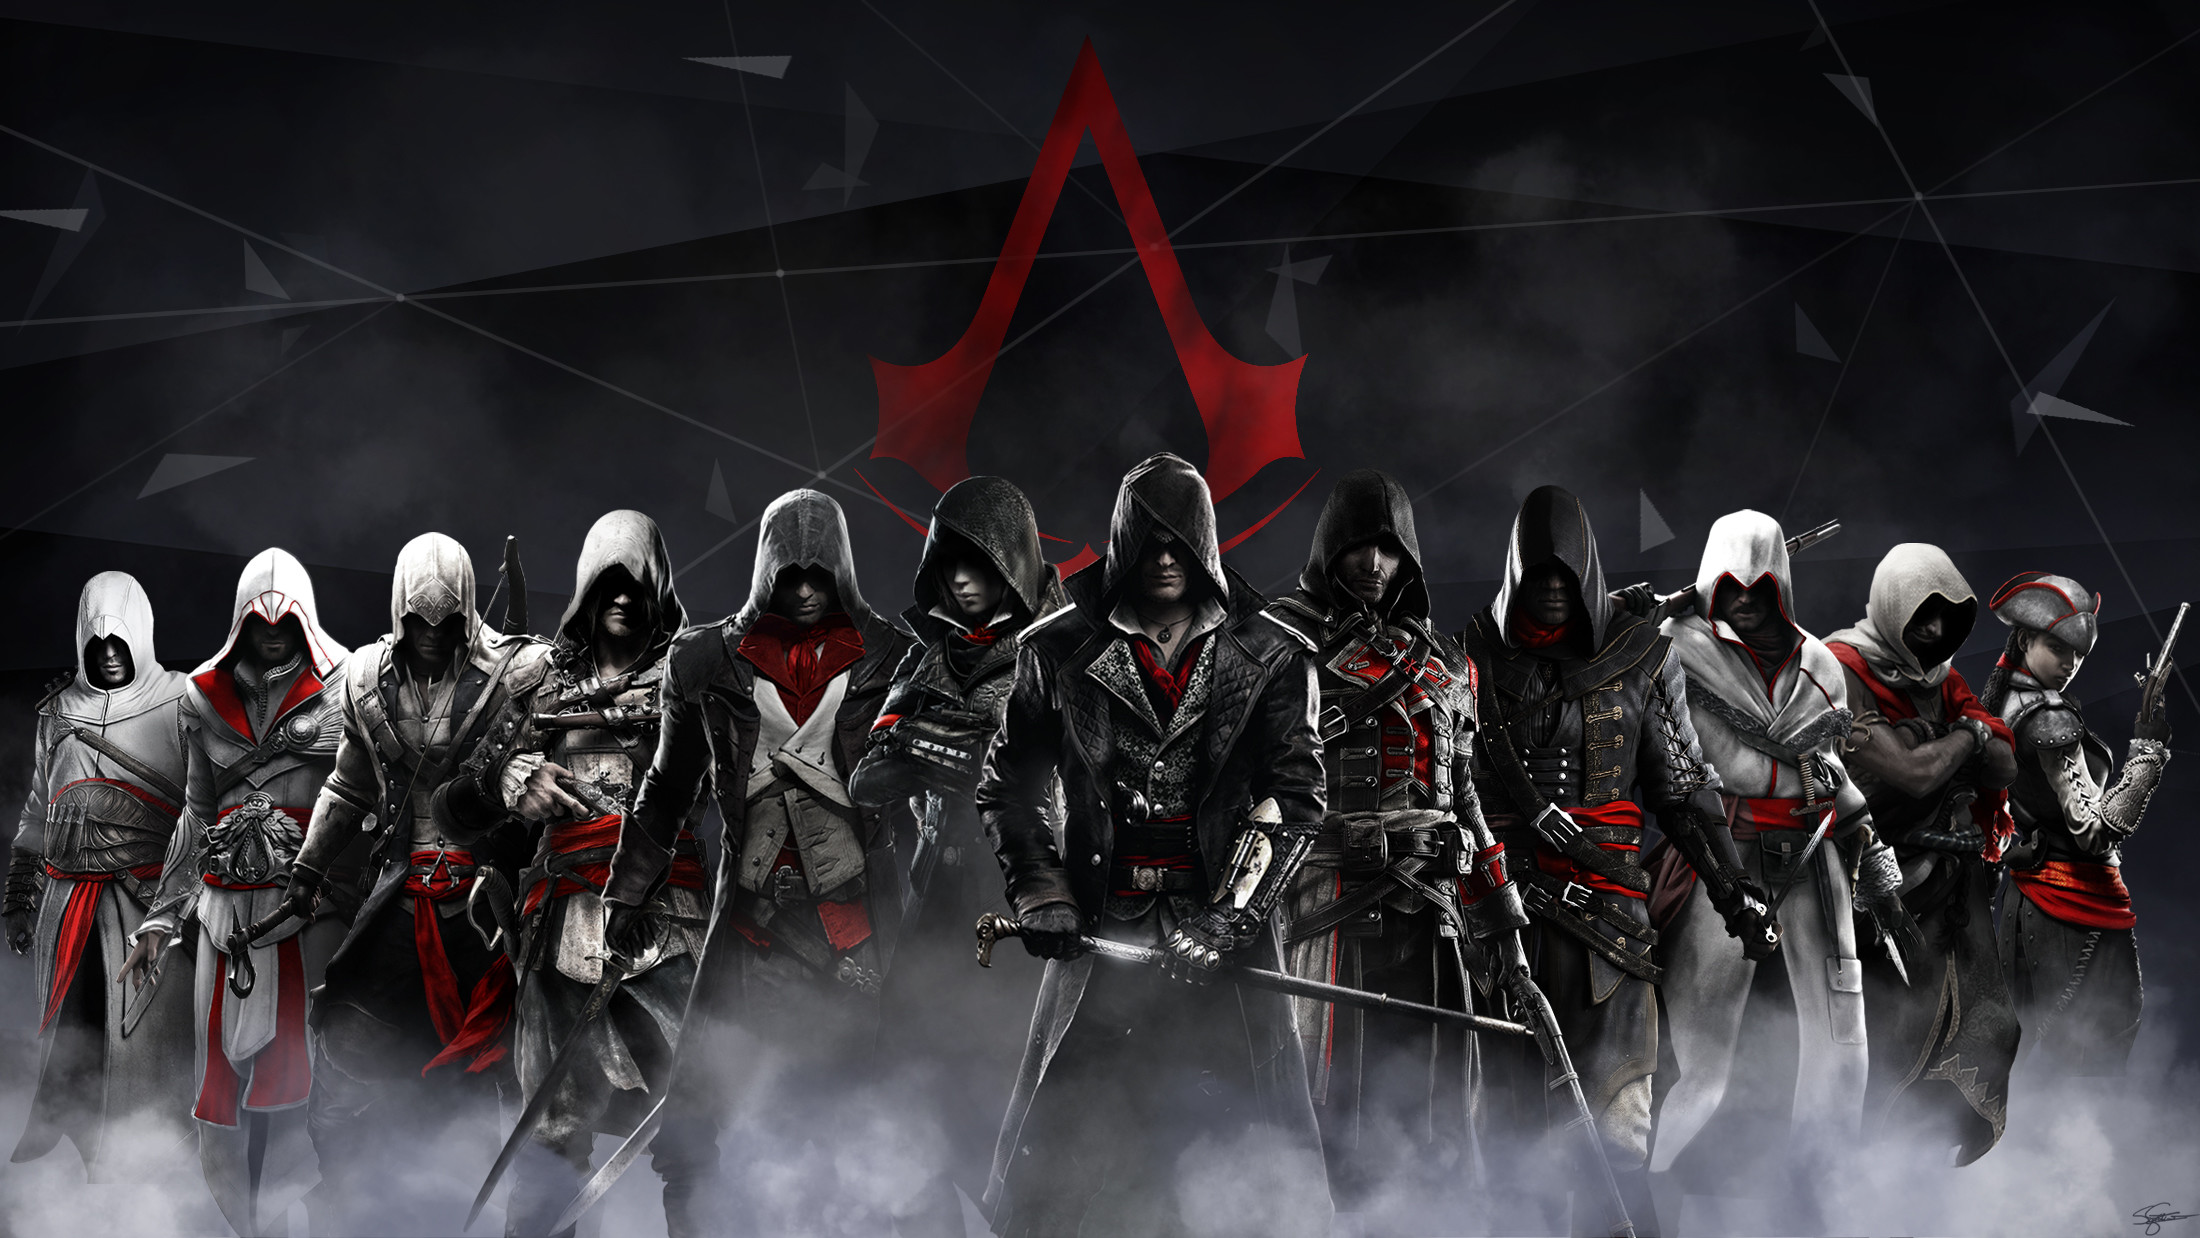 2200x1238 Video Game - Assassin's Creed Wallpaper